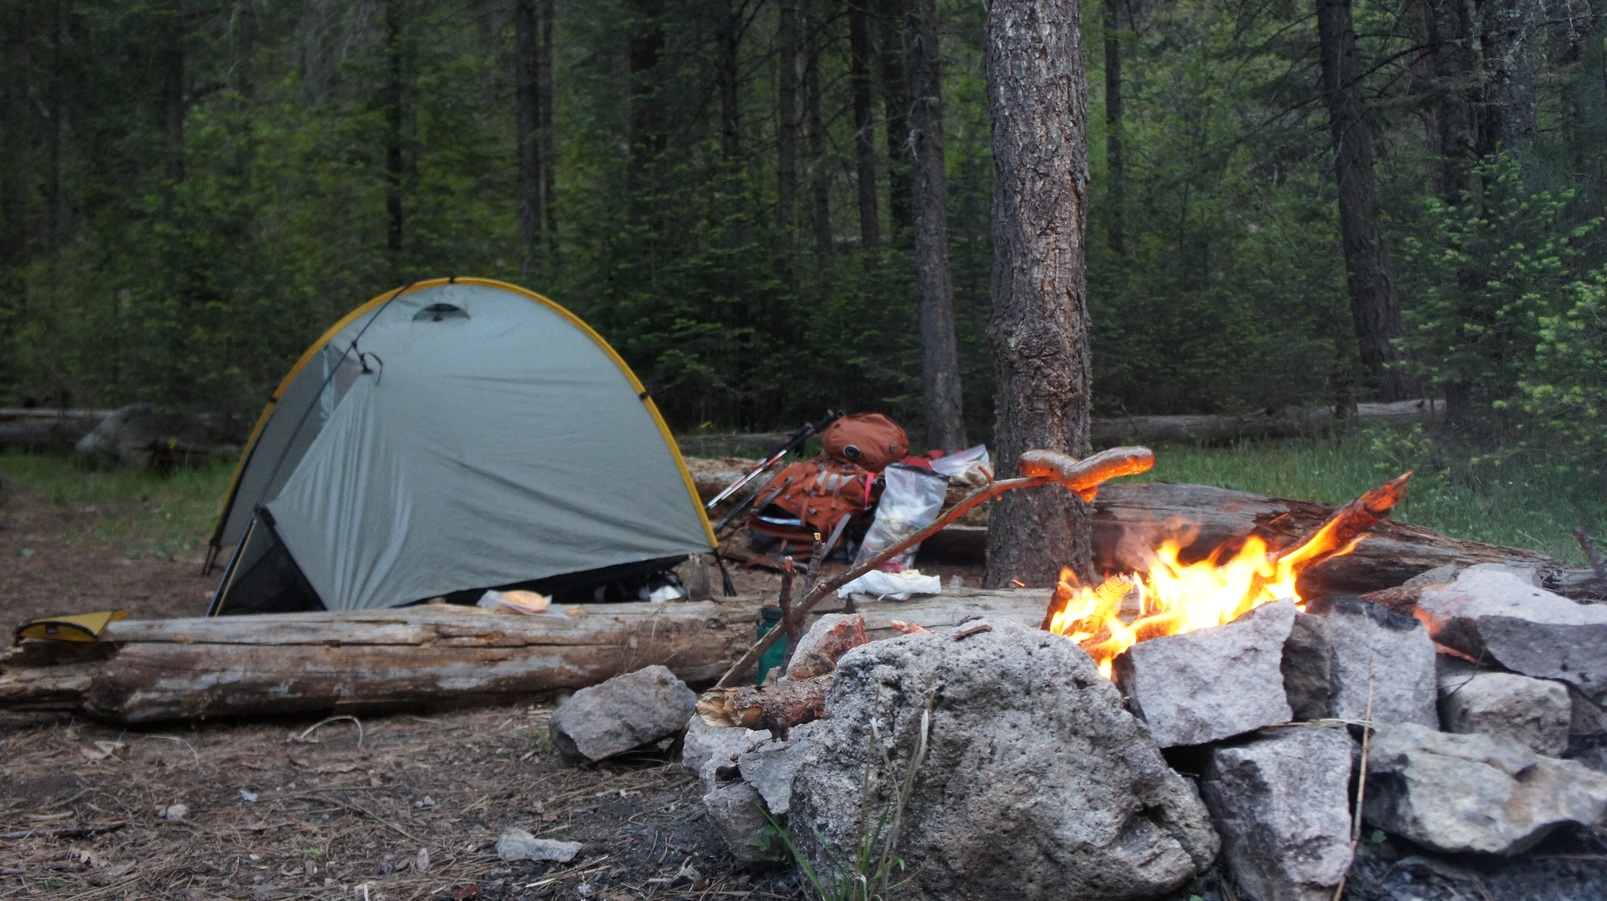 Cooking without a stove - Backpacking Without A Stove Italian Sausage Cooked Over Fire